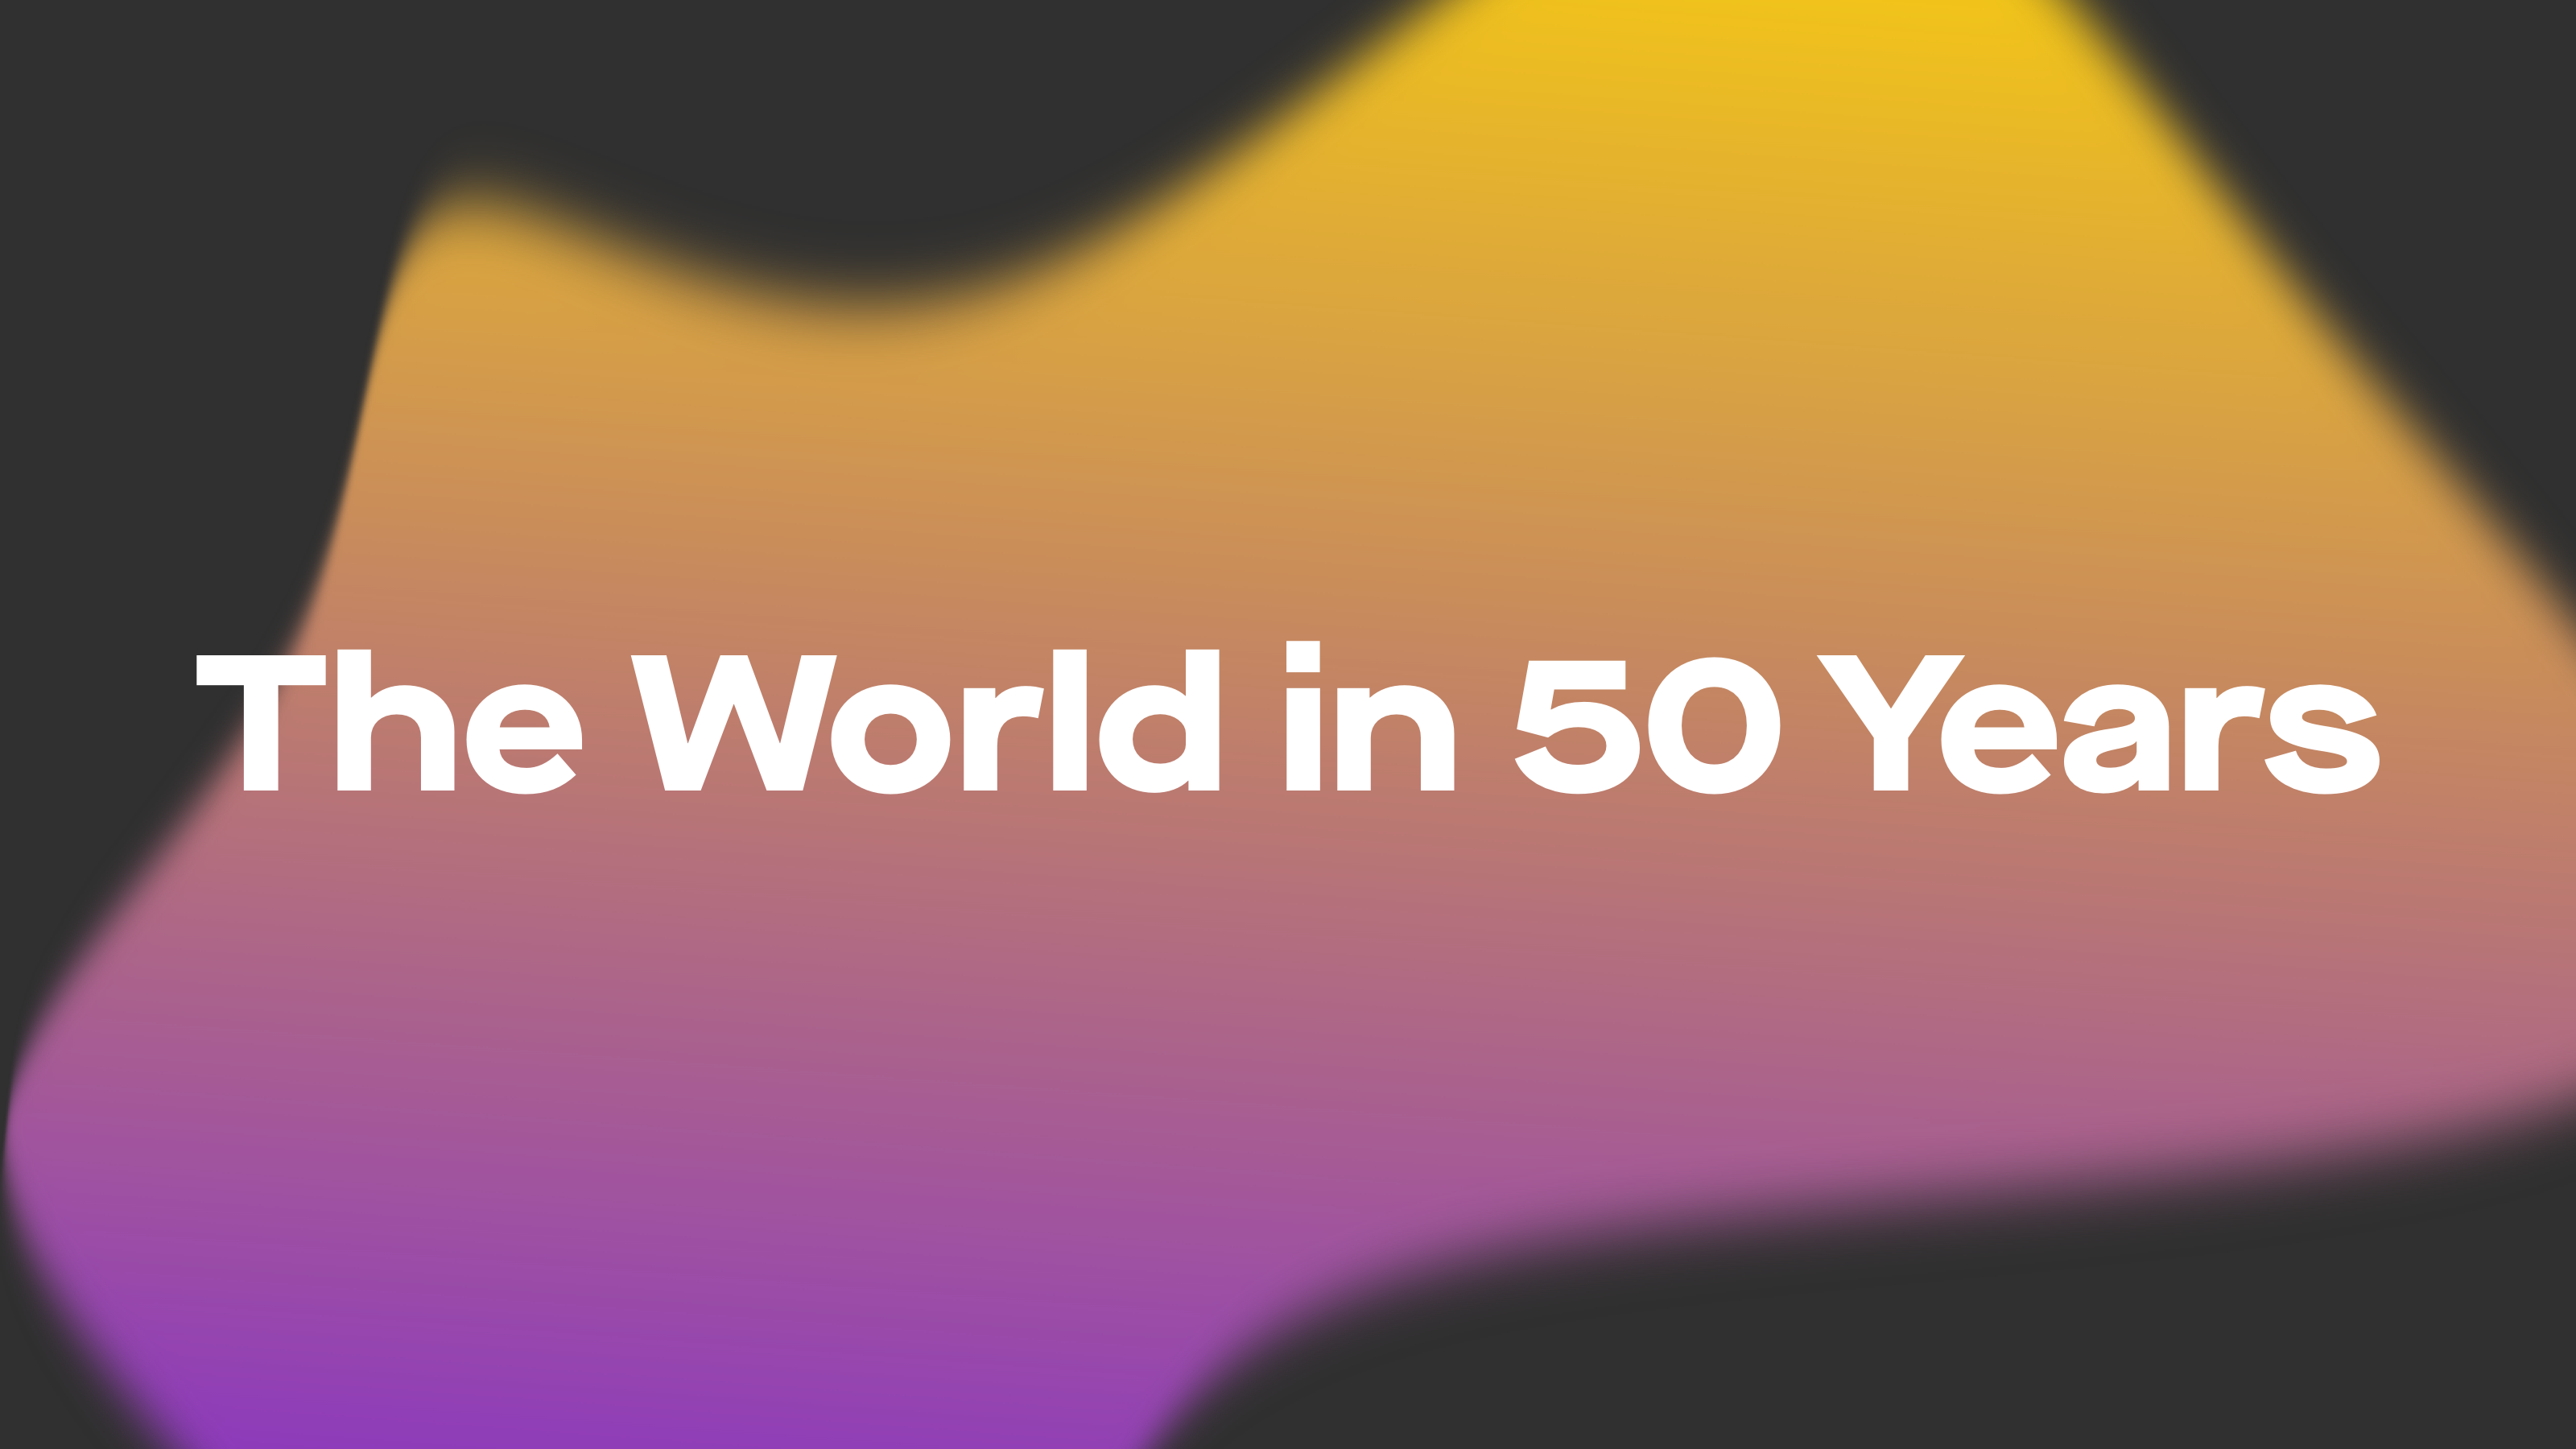 The World in 50 Years